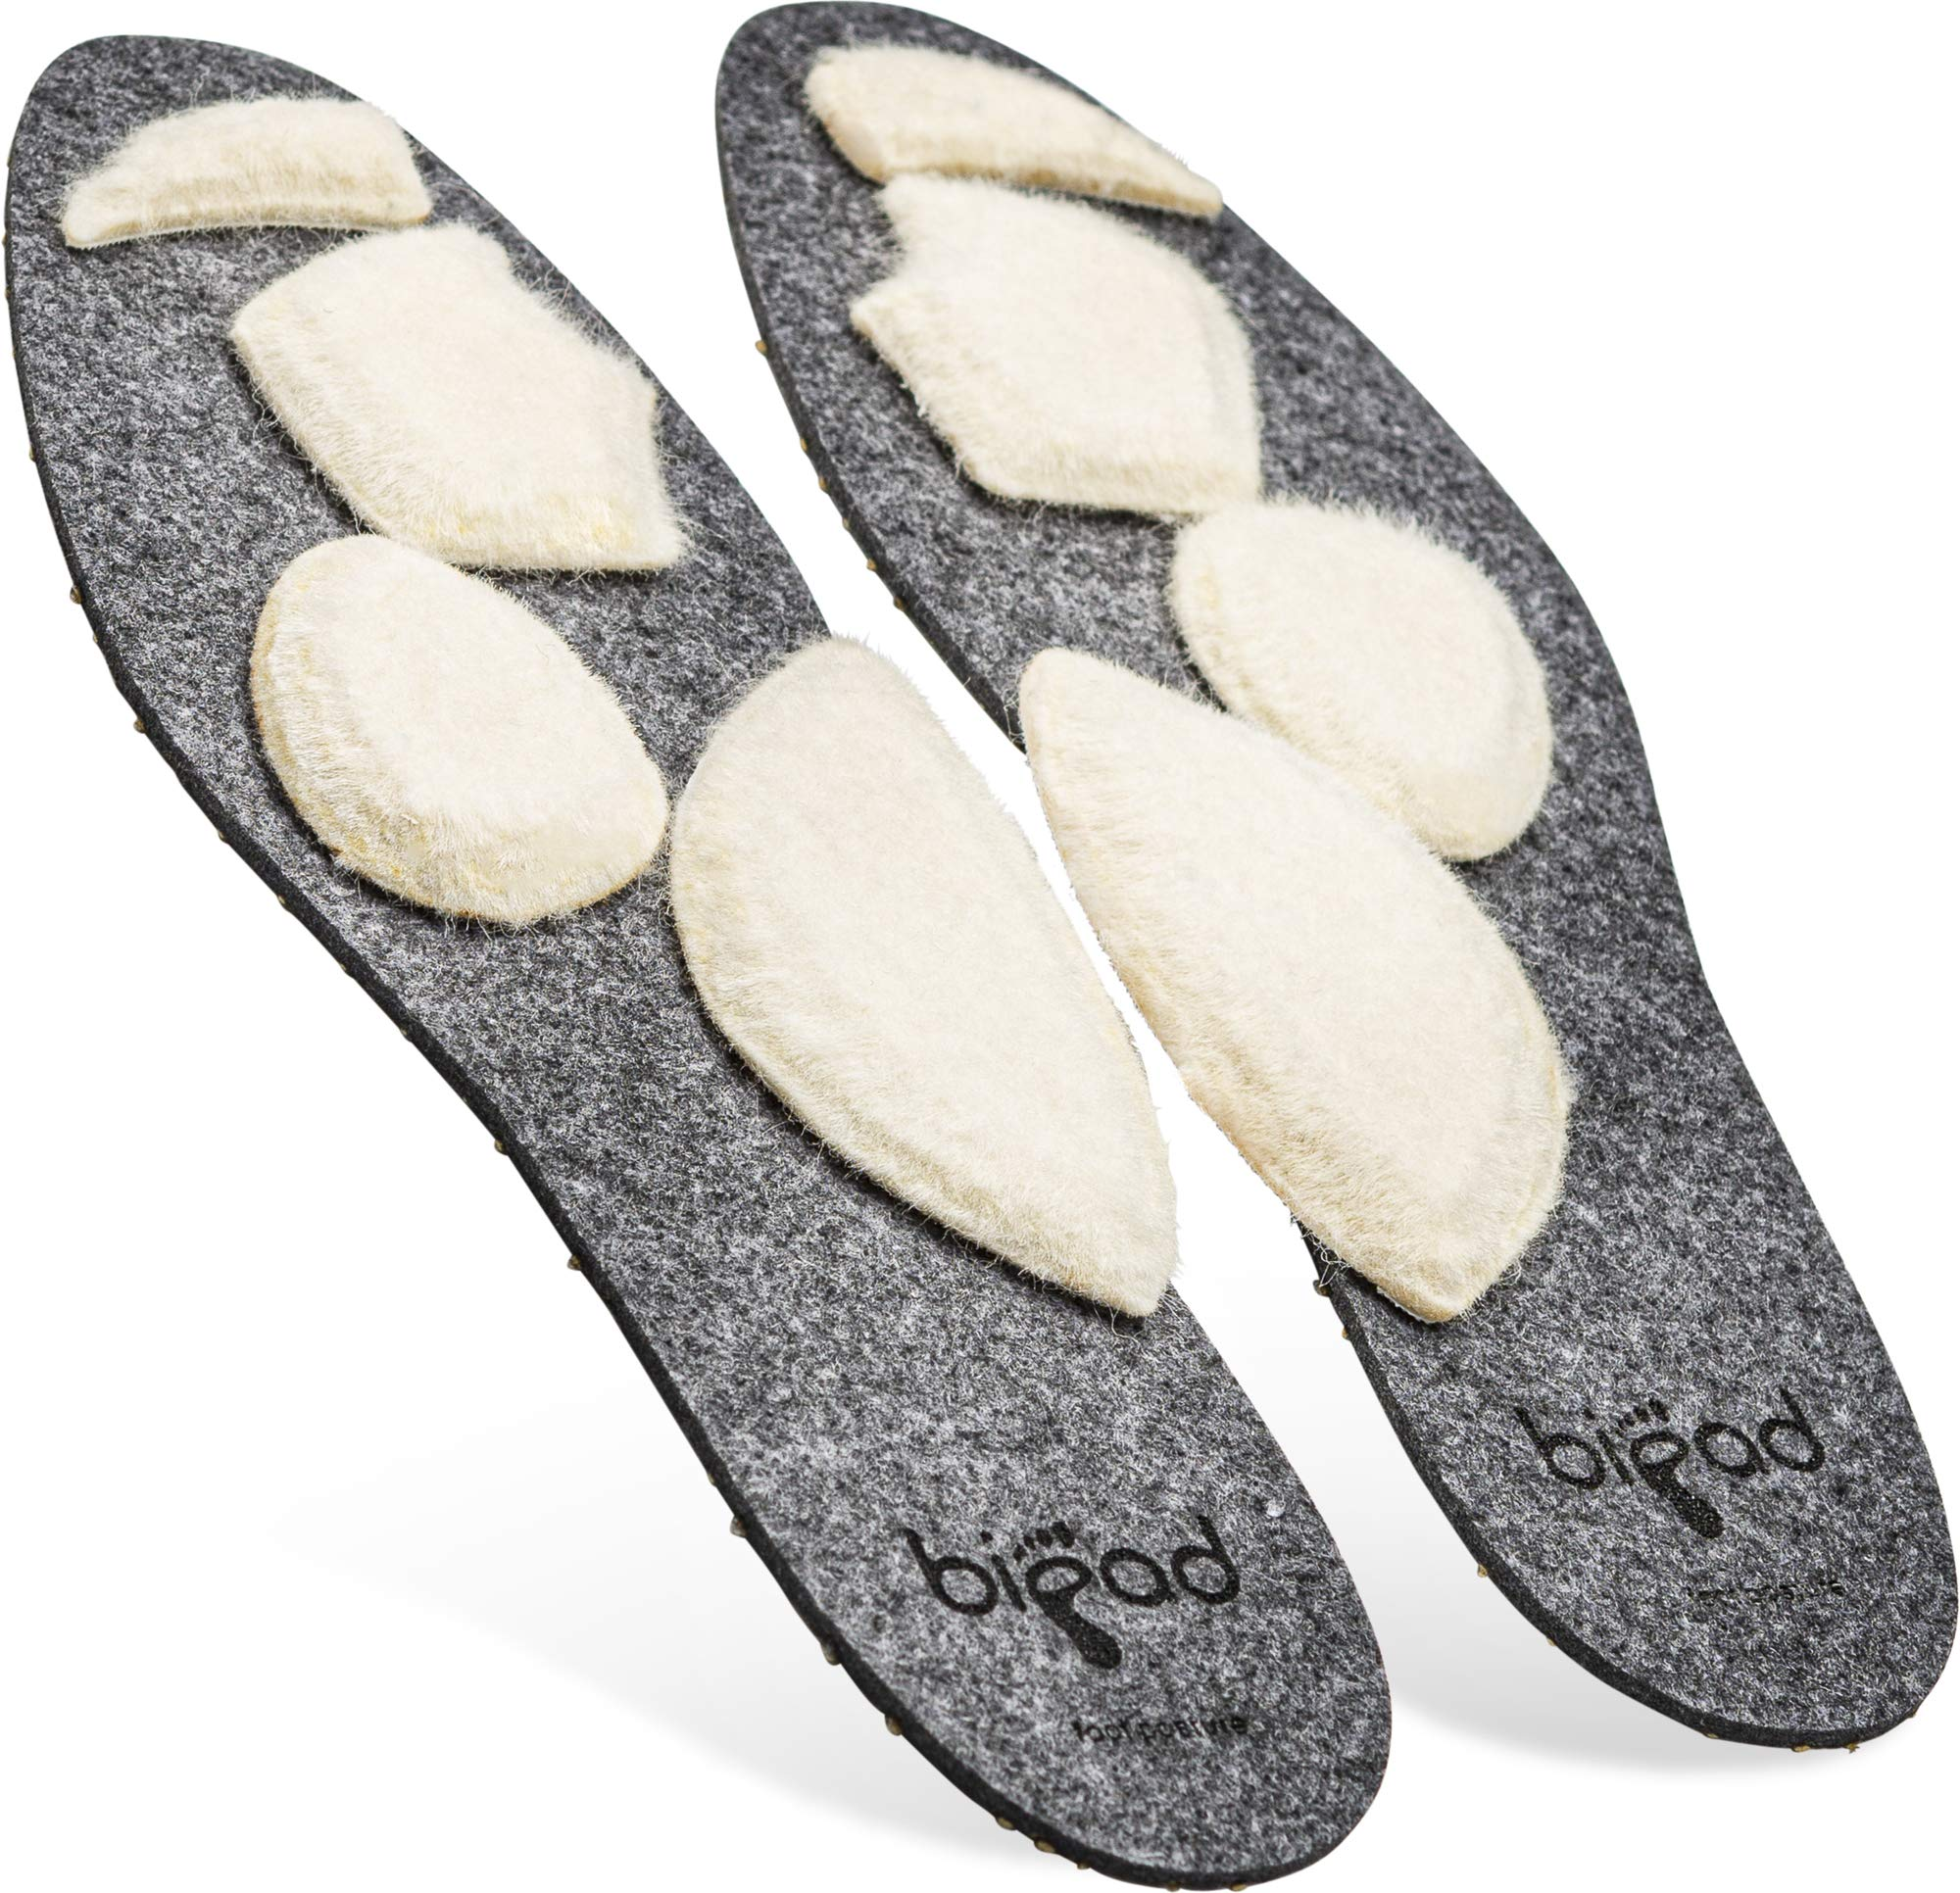 Bipad Plantar Fasciitis Orthotic Insoles for Men and Women – Shoe Inserts with Removable and Customizable Pads for Arch Support, Bones, Ligaments, and Tendons – Unisex Athletic Cushion Inserts